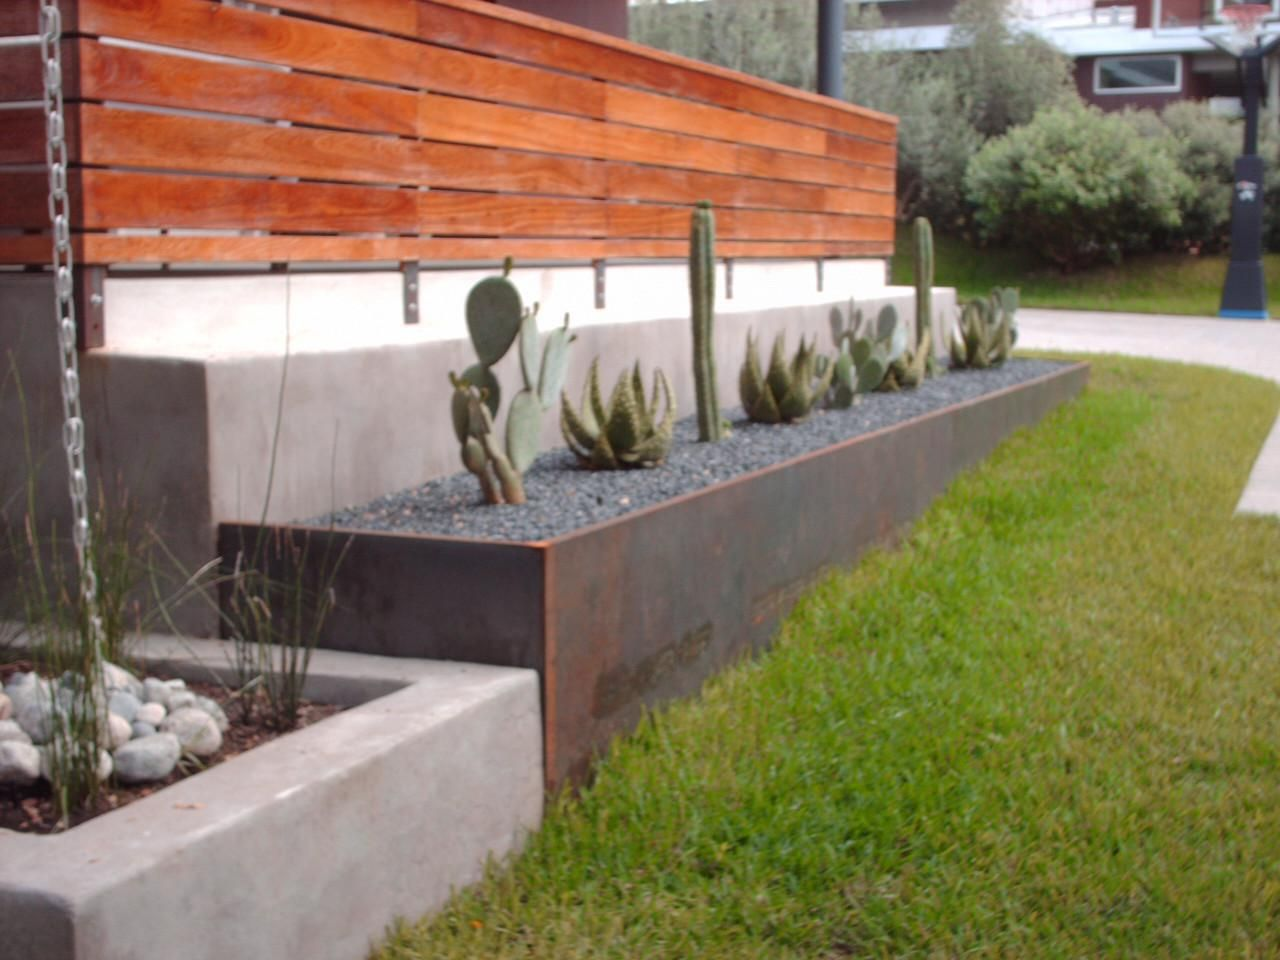 best large metal planters outdoor  modern metal planters ideas . best large metal planters outdoor  modern metal planters ideas